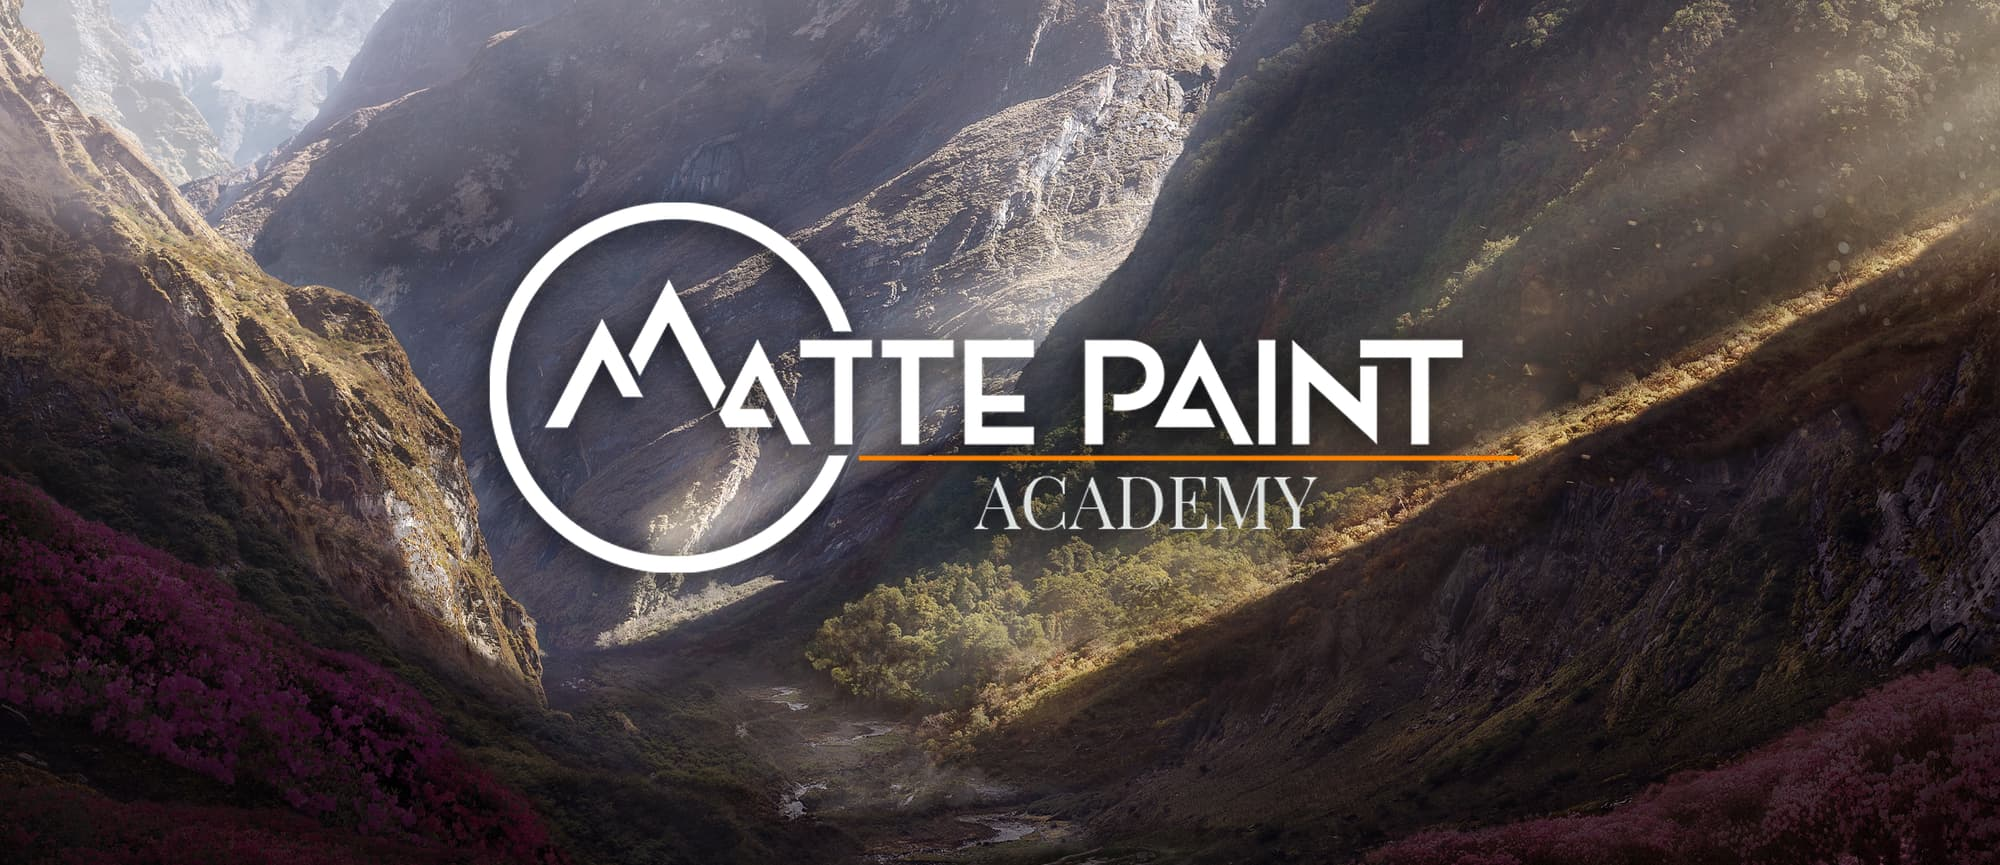 """Perspective Repeat"" with Conrad Allan and the MattePaint Academy"